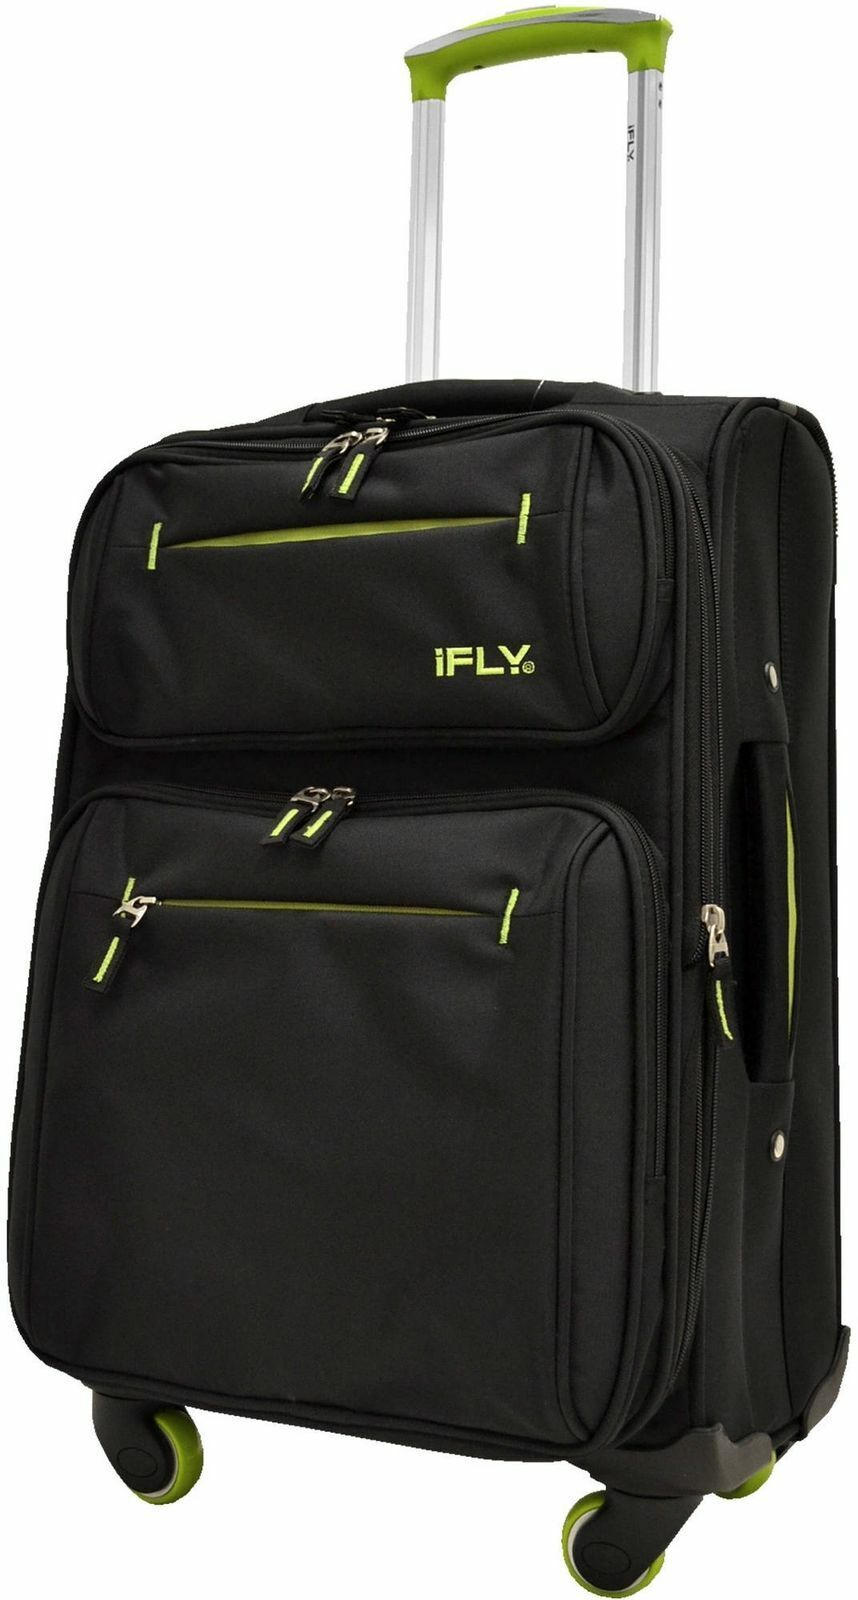 IFLY Soft Sided Luggage Accent 20 , Black And Green Suitcase Carry-On 20a  - $66.50